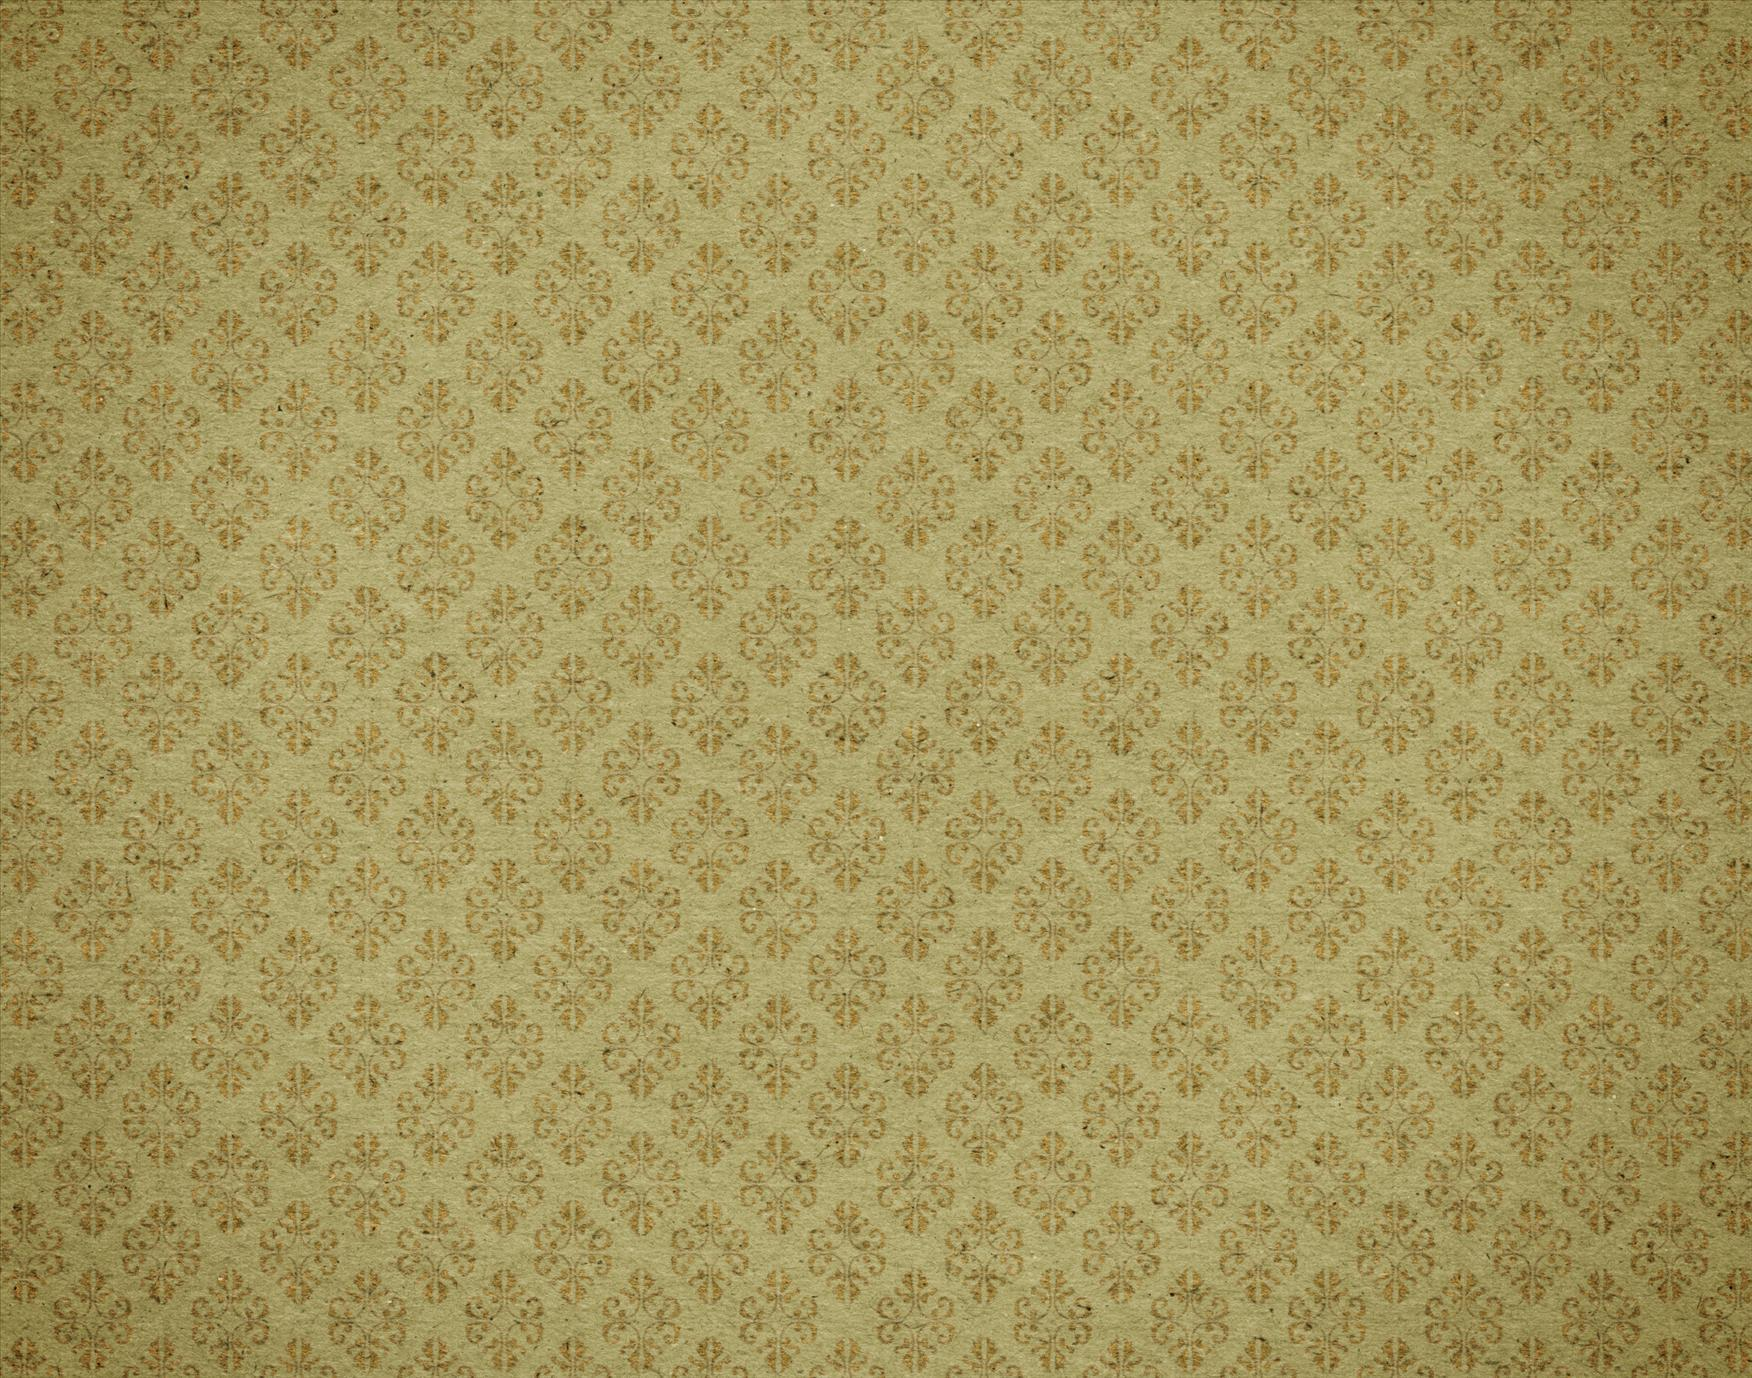 Vintage wallpaper backgrounds wallpaper cave for Vintage wallpaper